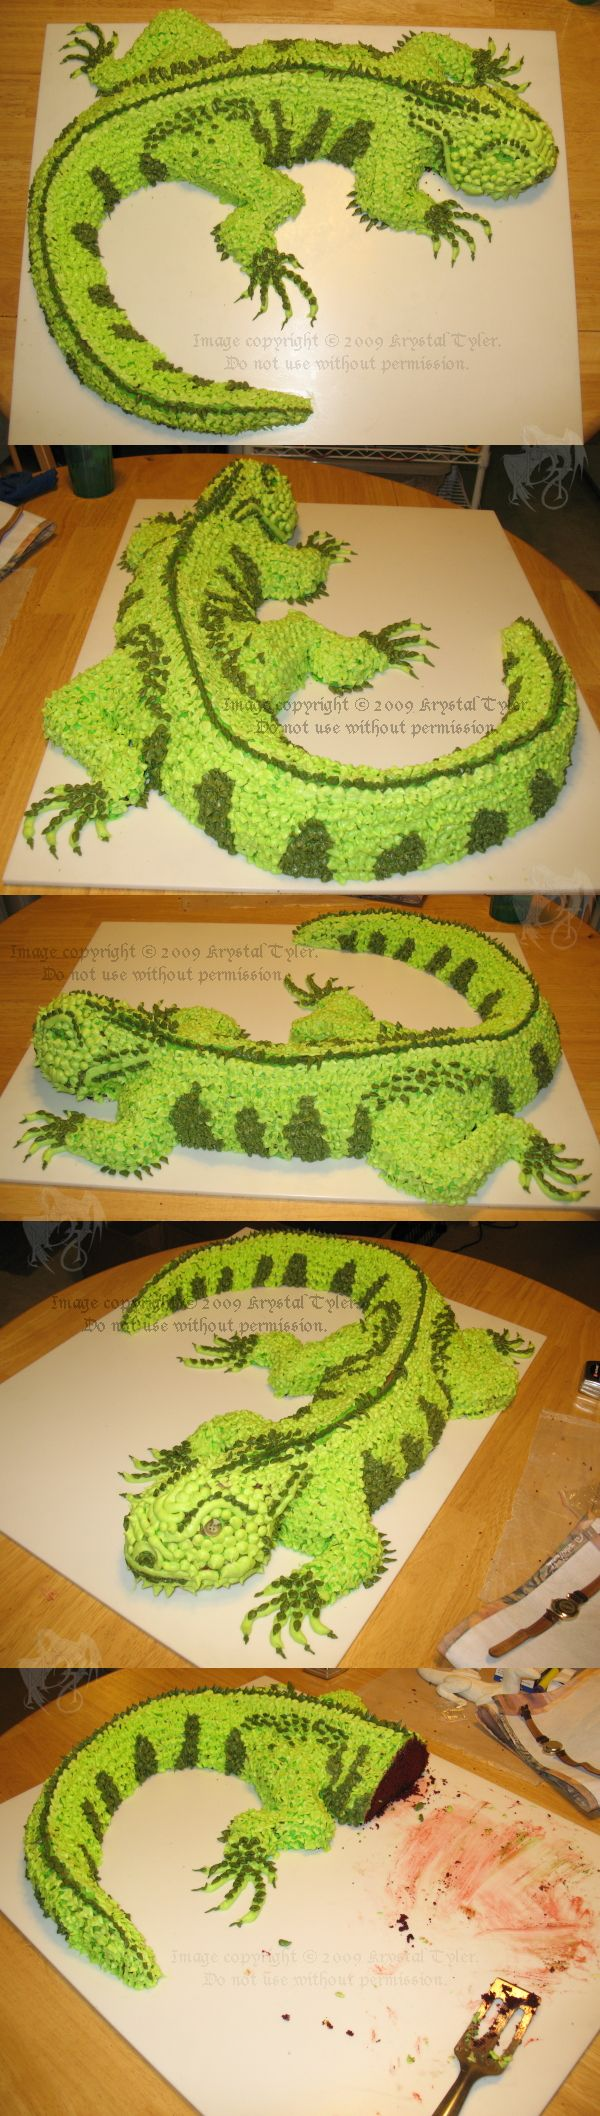 The Incredible, Edible Iguana by R-Eventide.deviantart.com on @deviantART